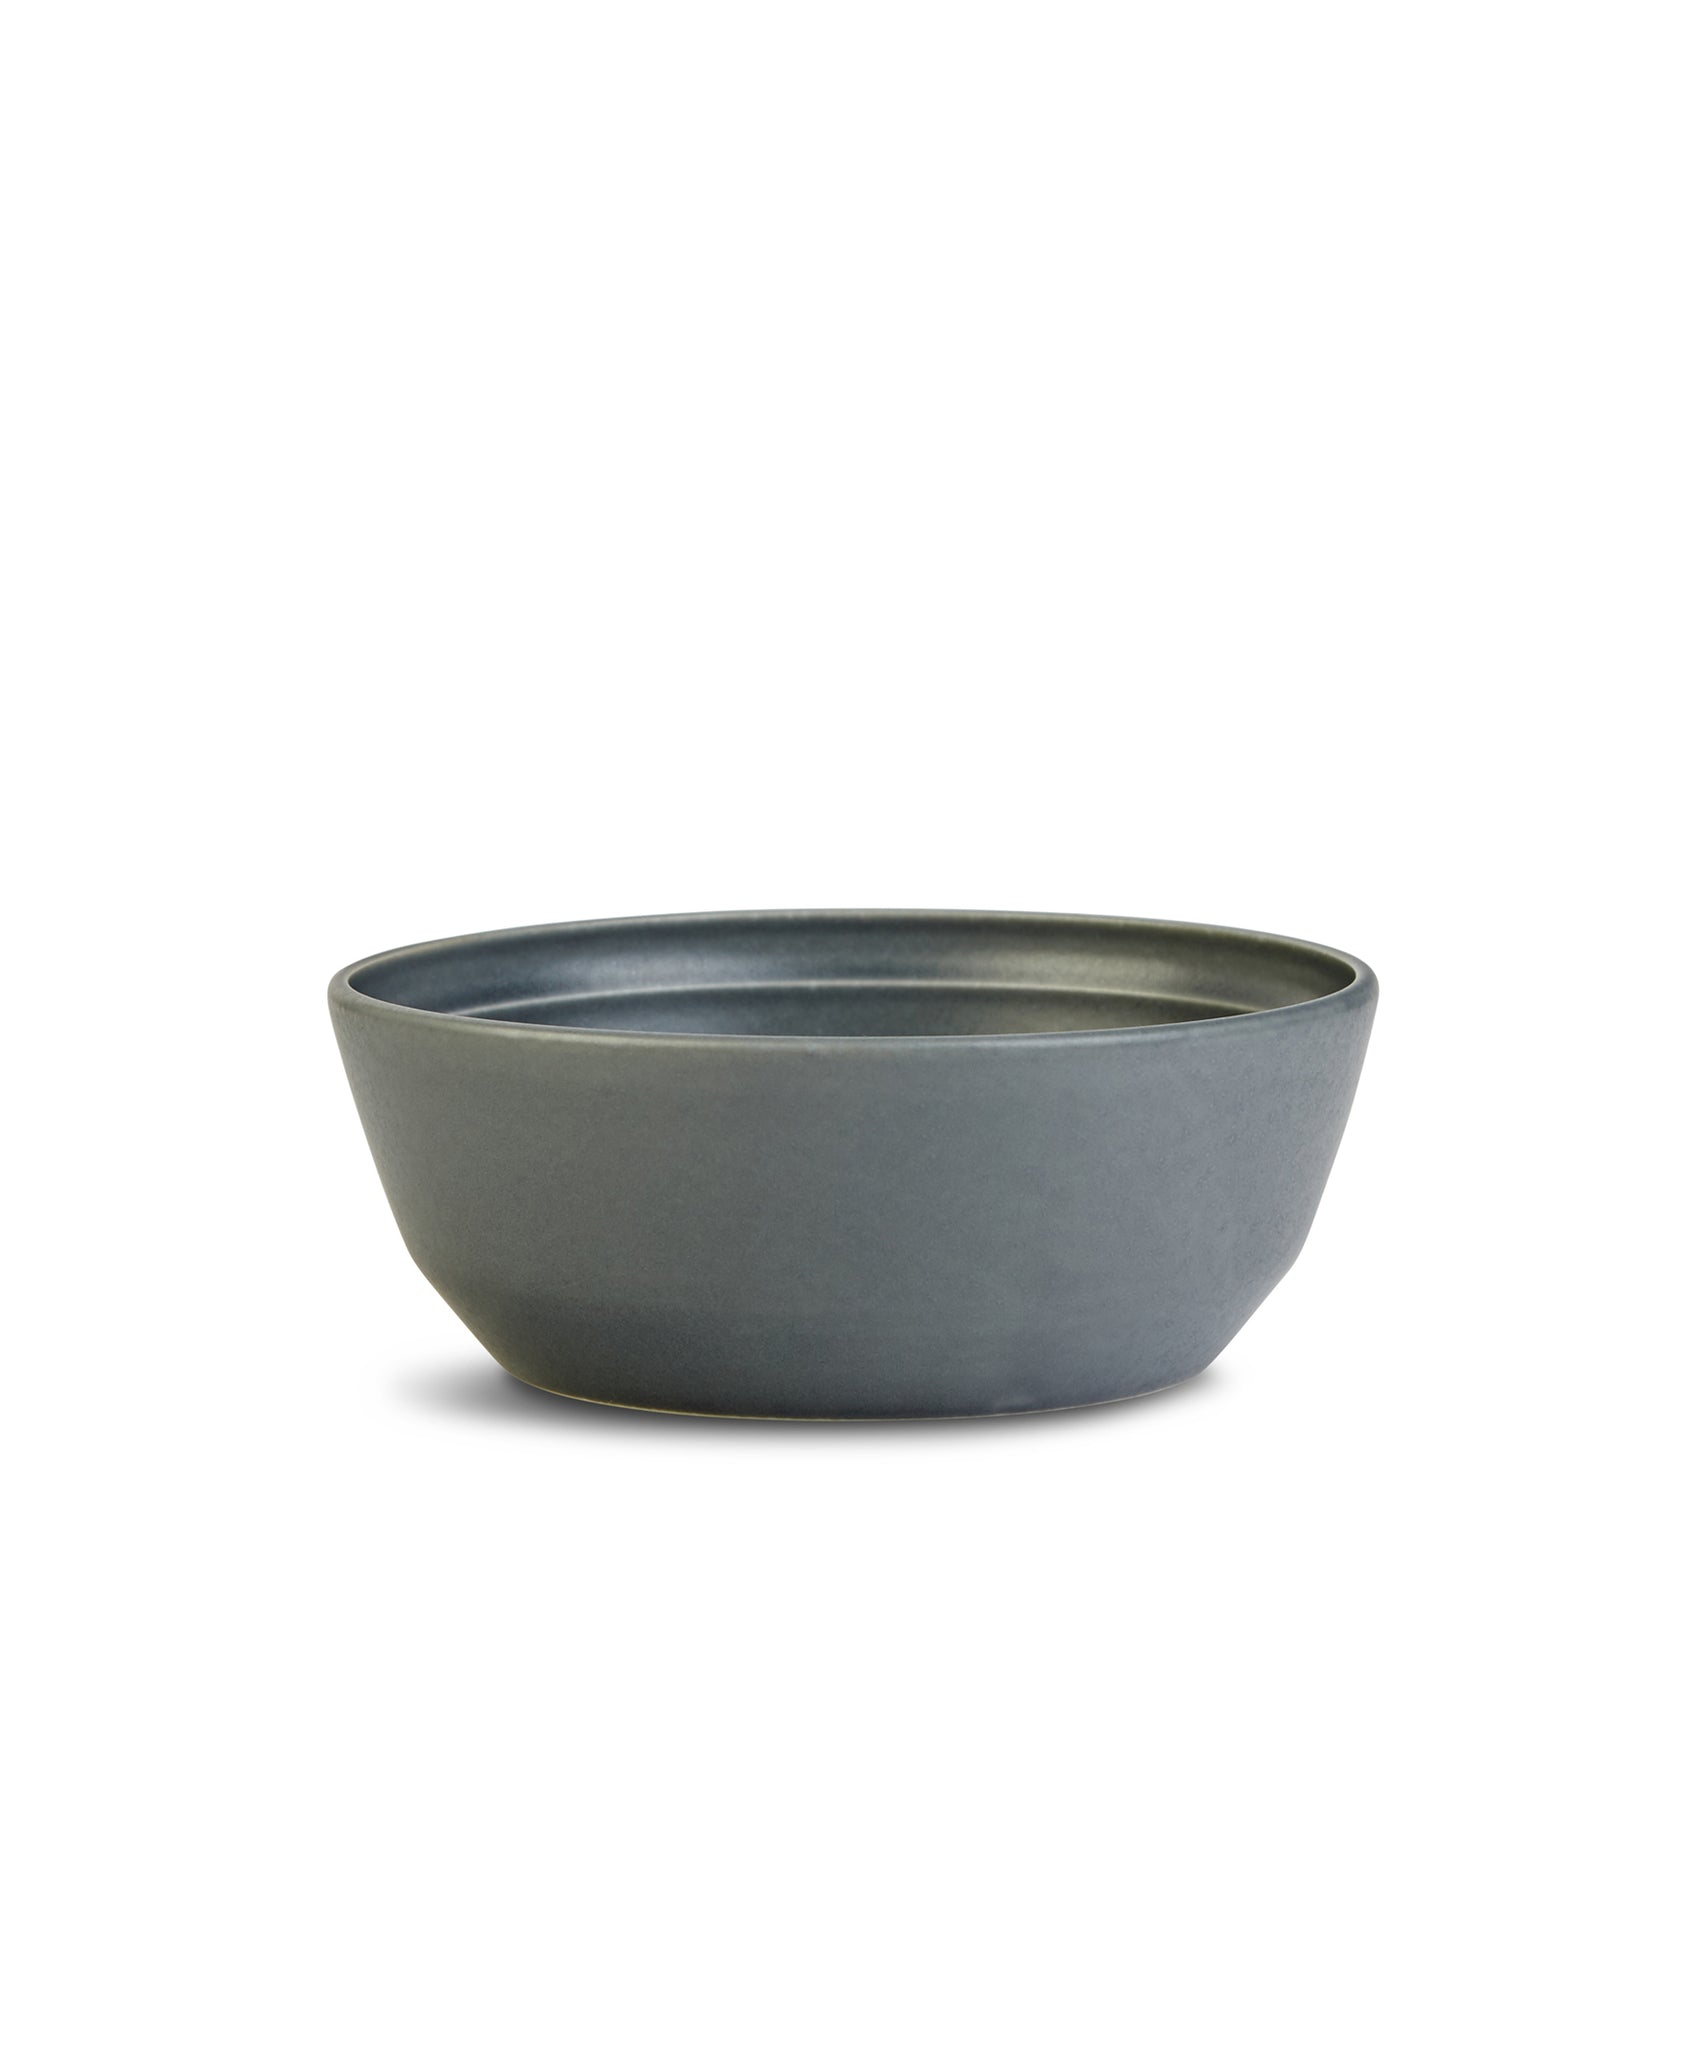 Fog Bowl 145mm (Dark Grey) by Kinto